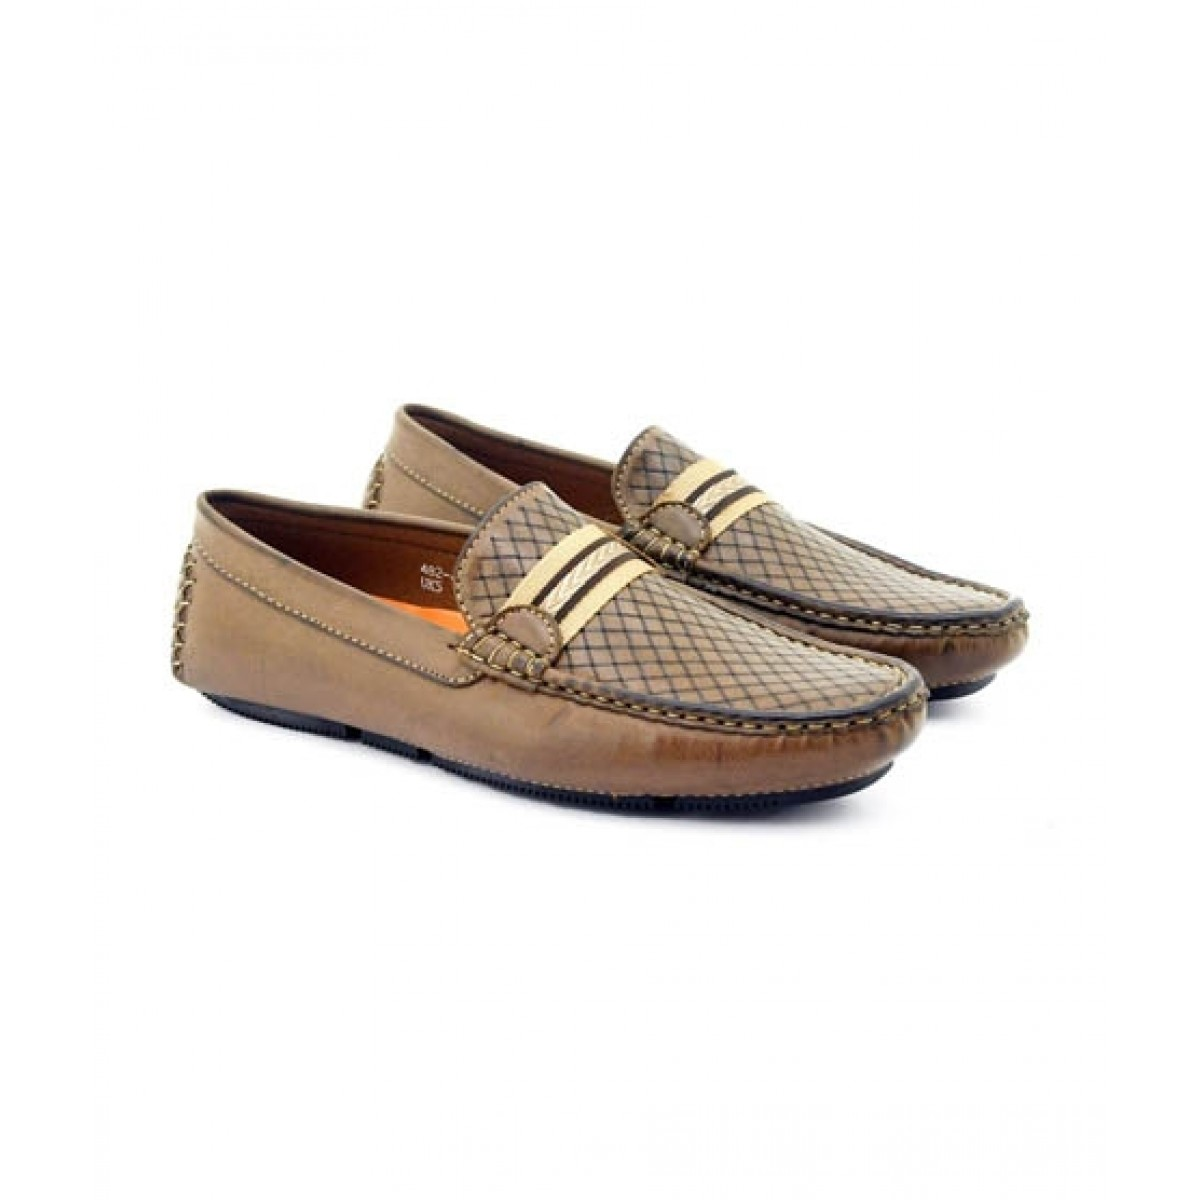 Bata Casual Loafers For Men Brown (482-4403)